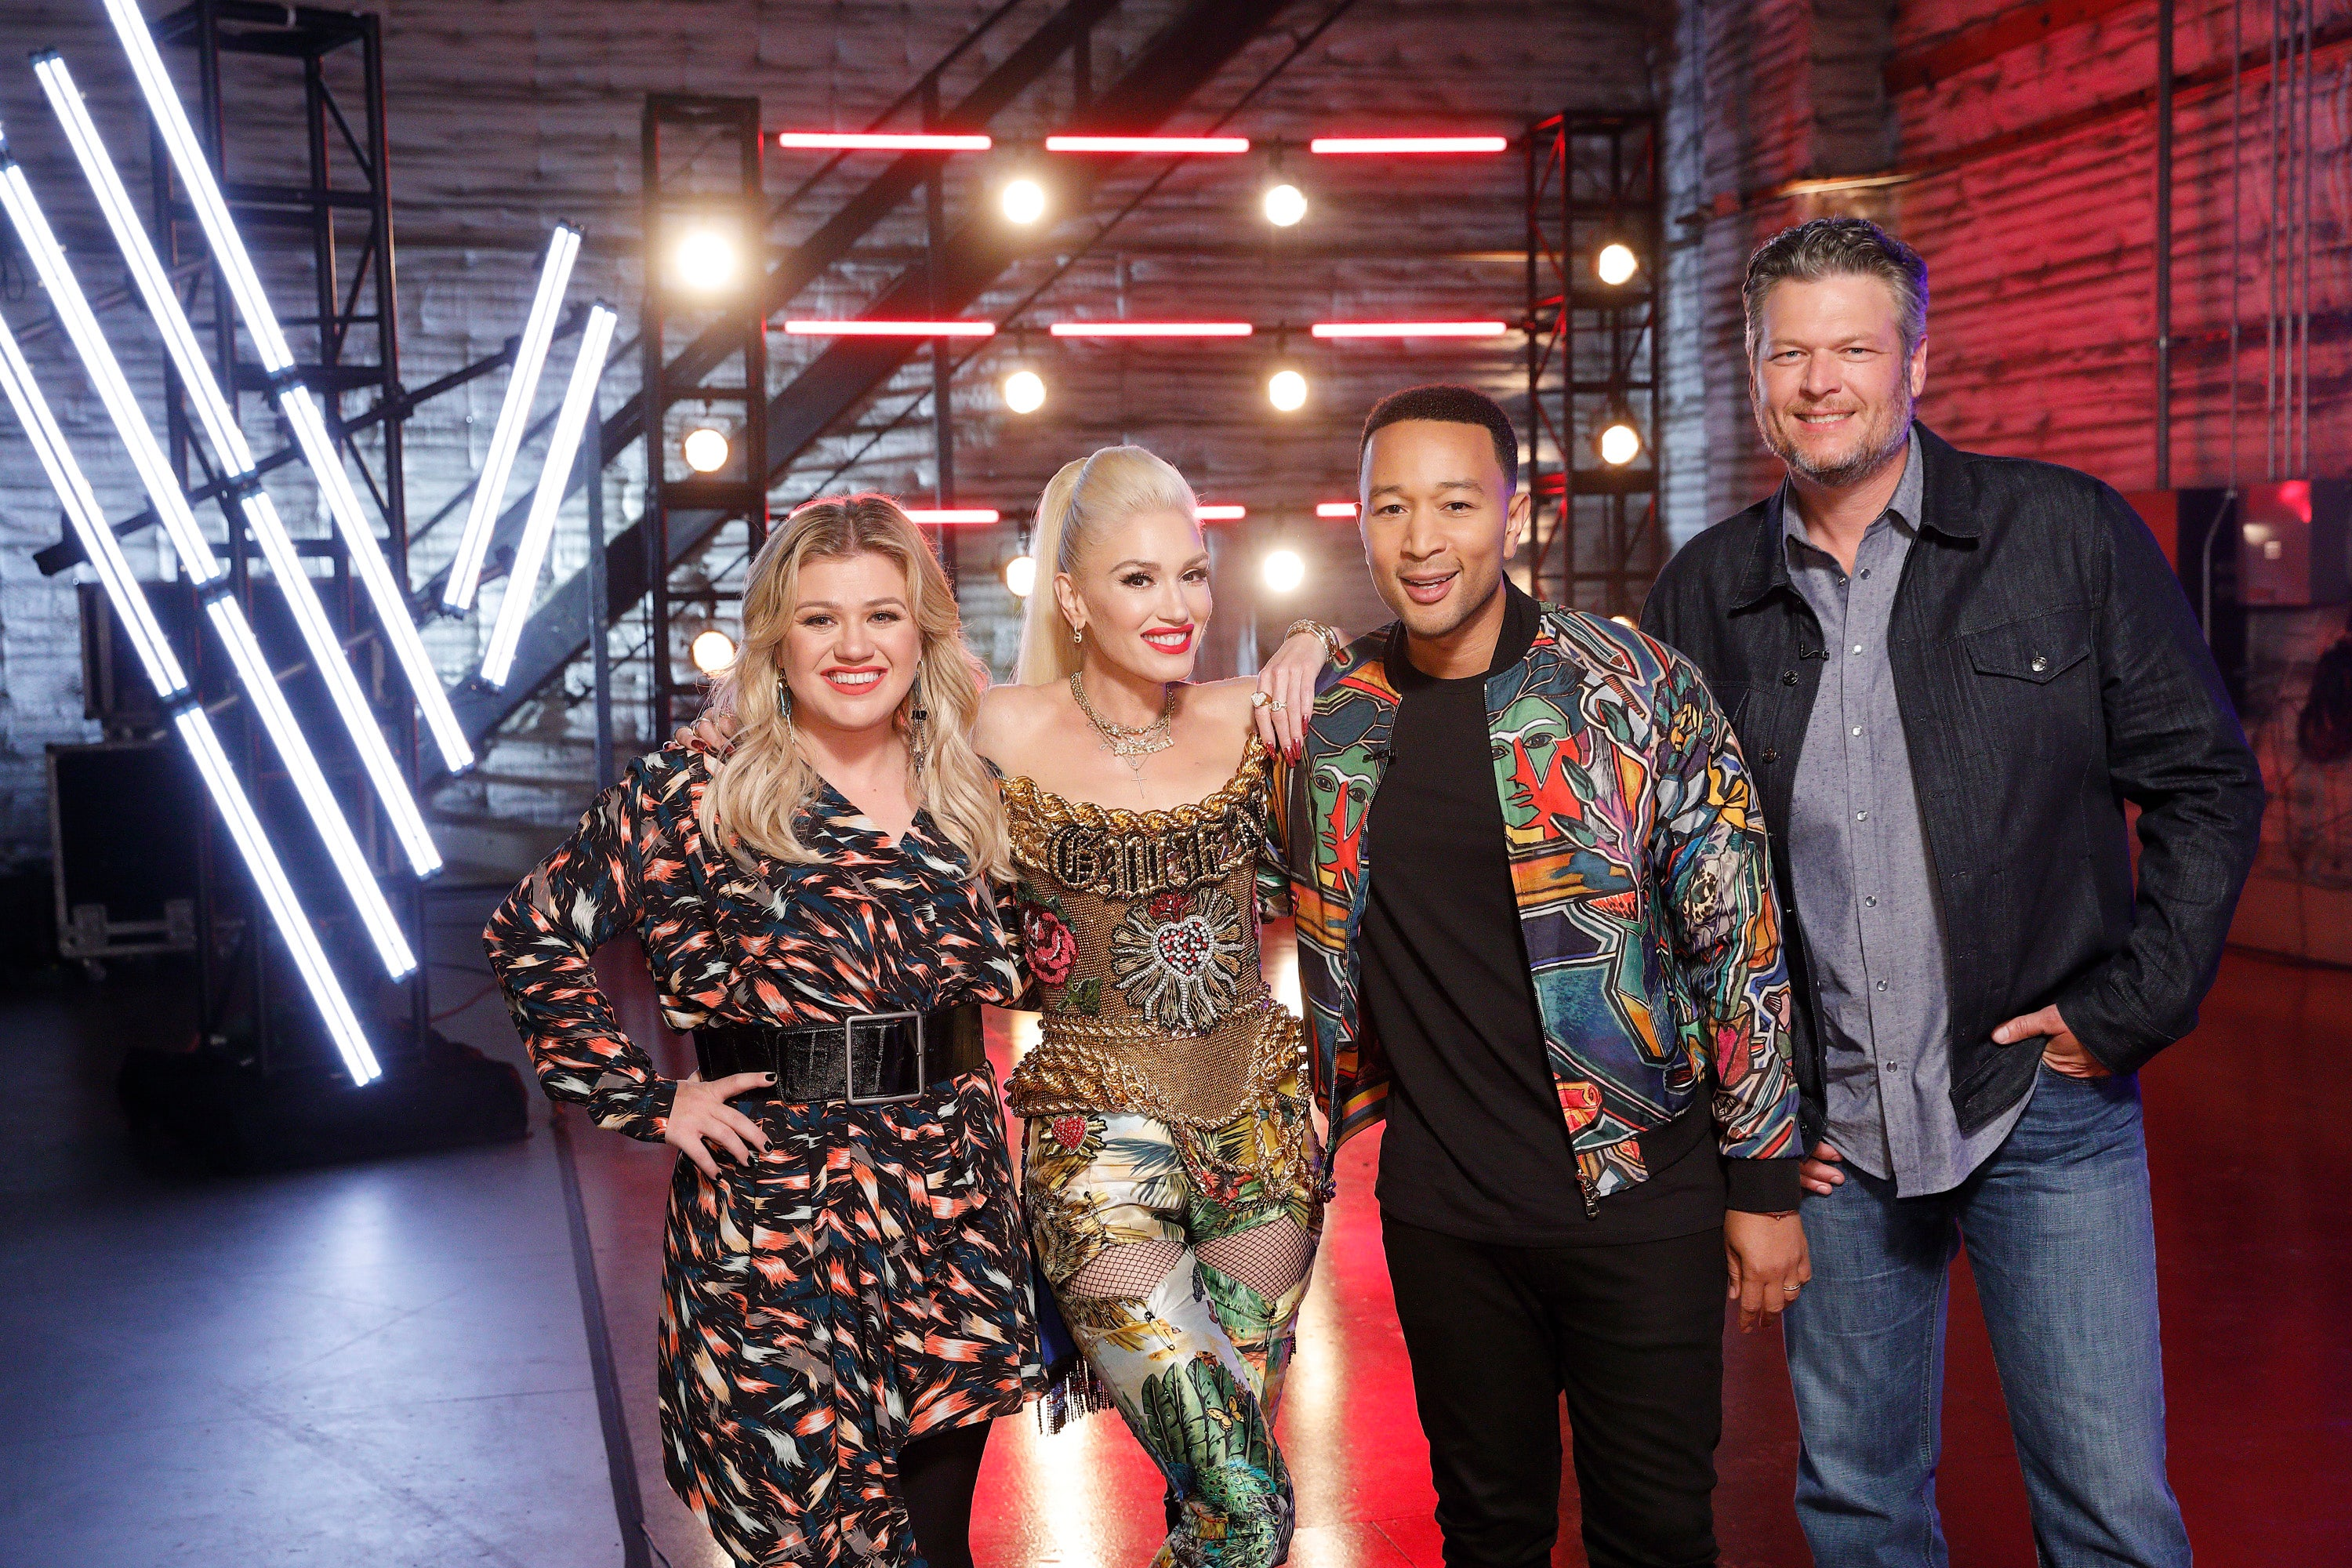 'The Voice': All 4 Coaches Will Compete in the Season 17 Finale After Another Emotional Elimination